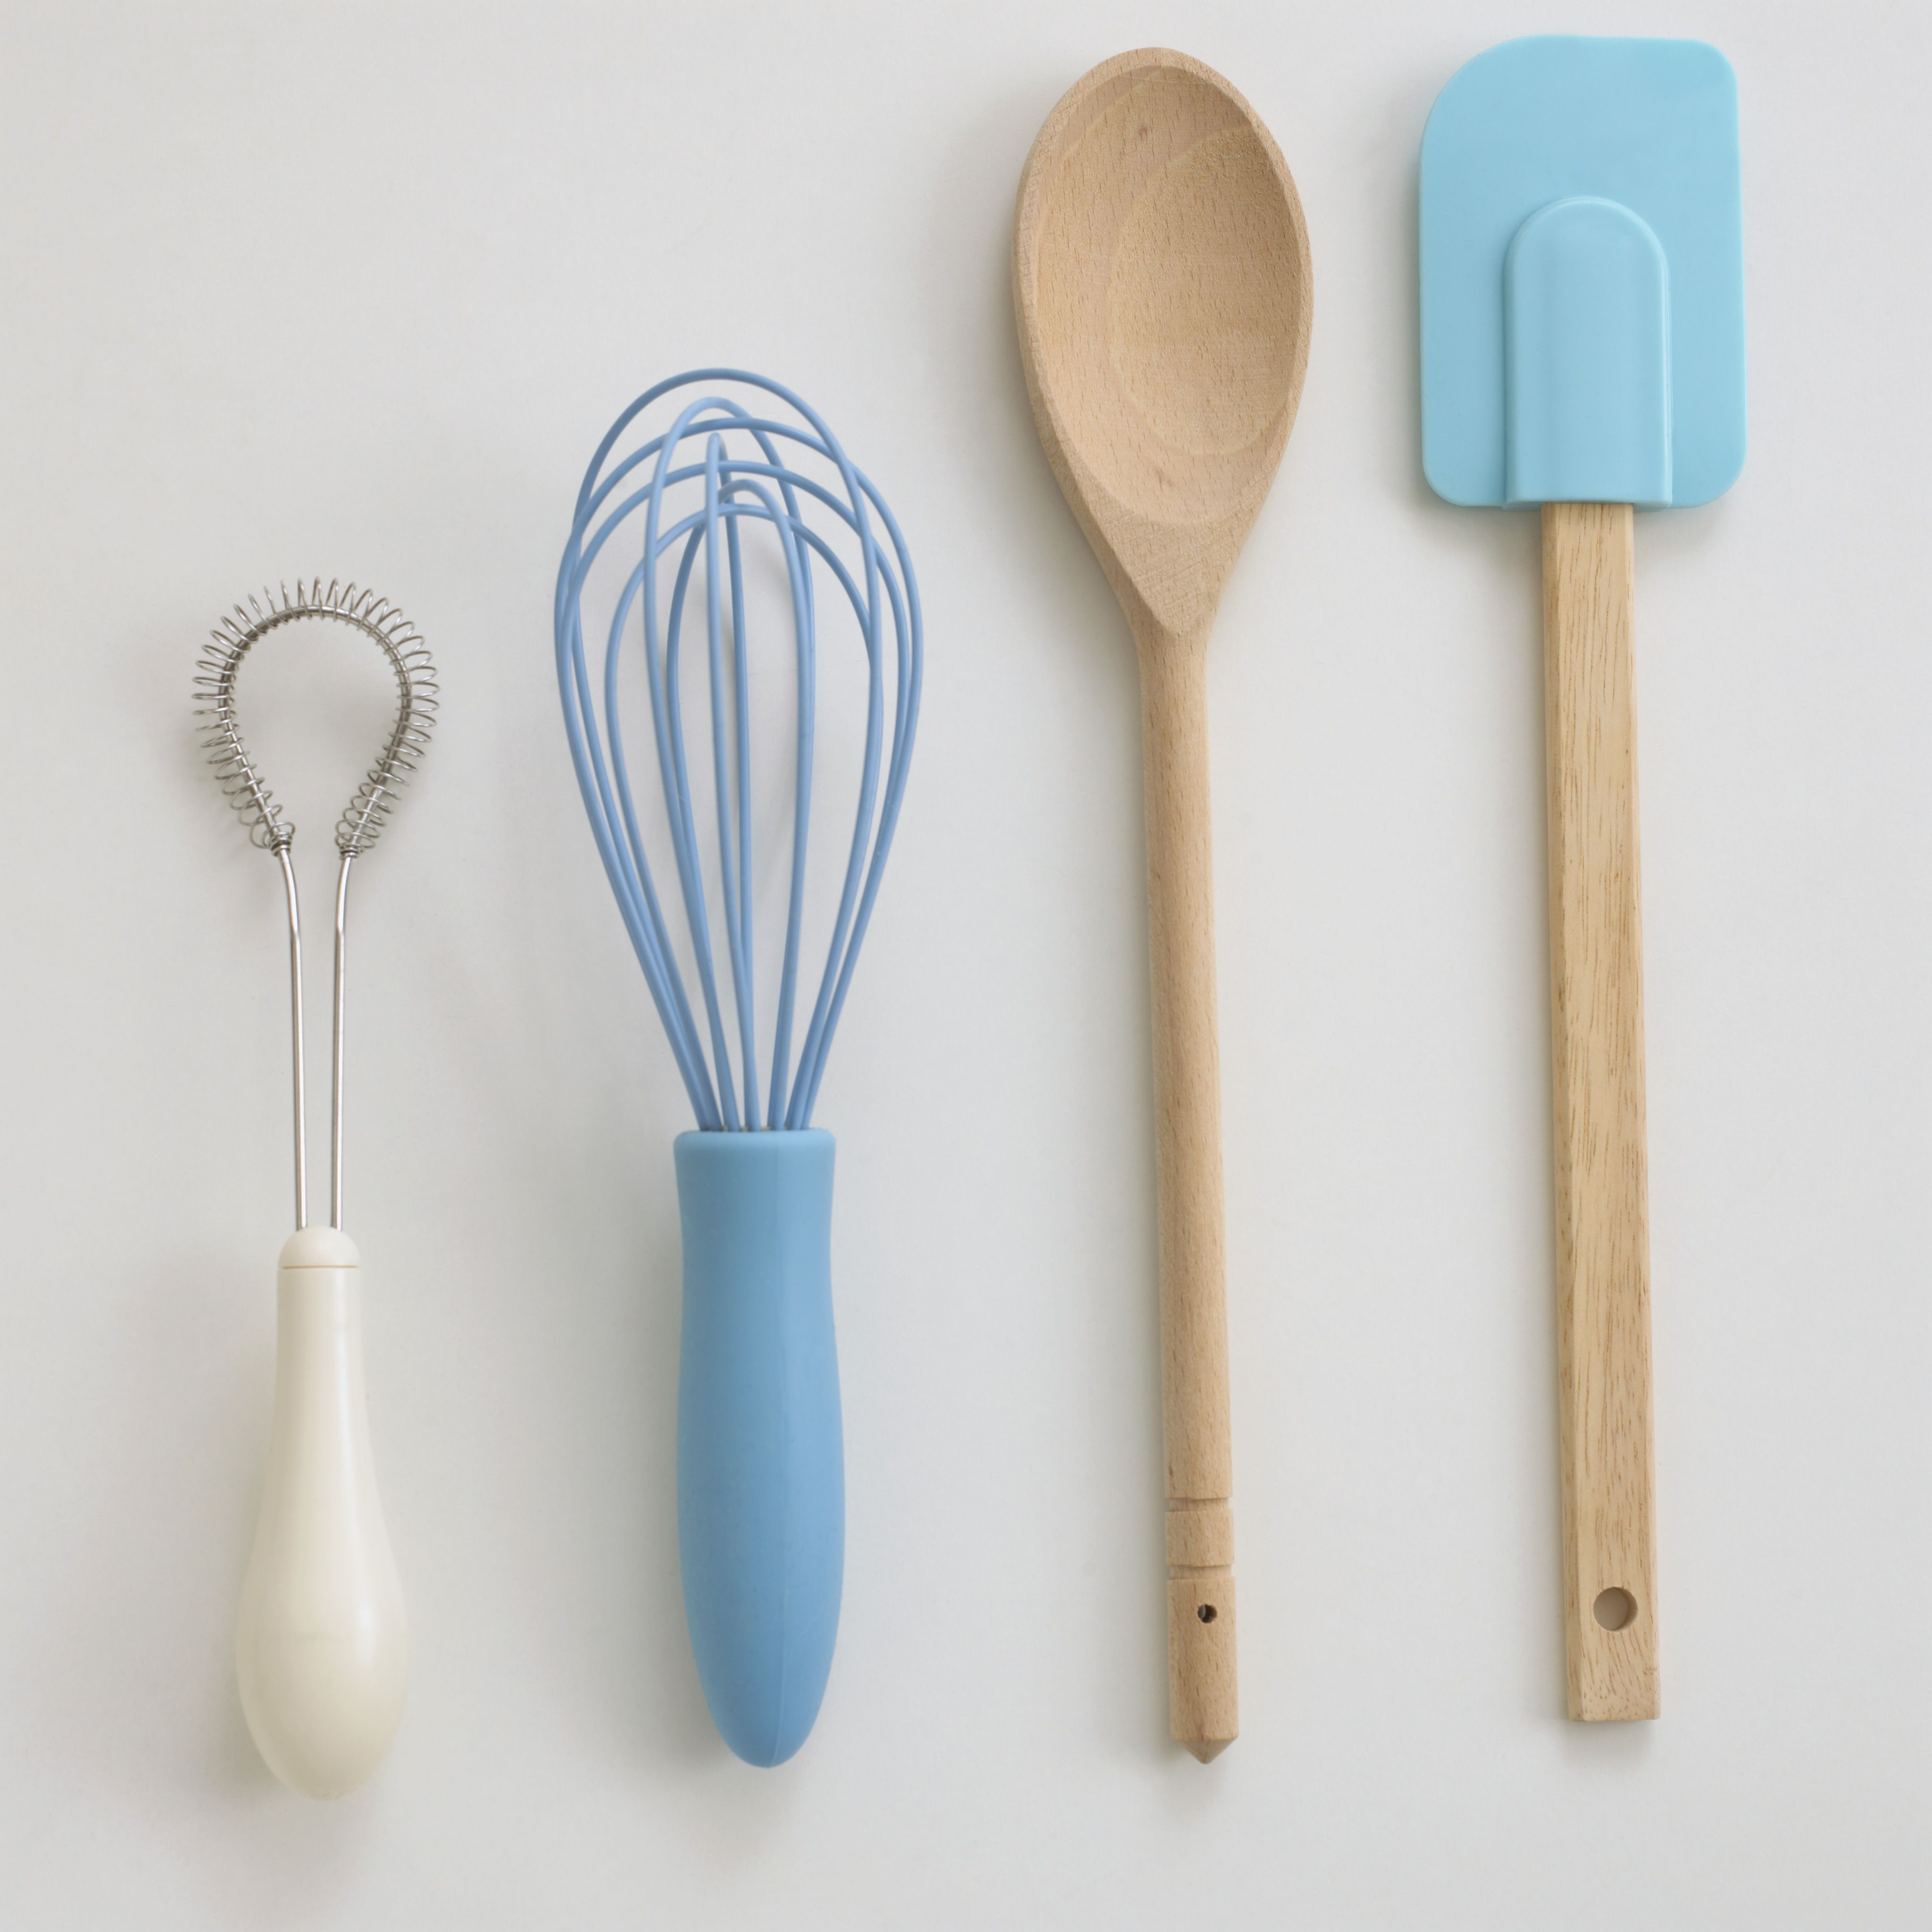 Baking Tools And Equipment Baking Utensils And Pastry Tools List